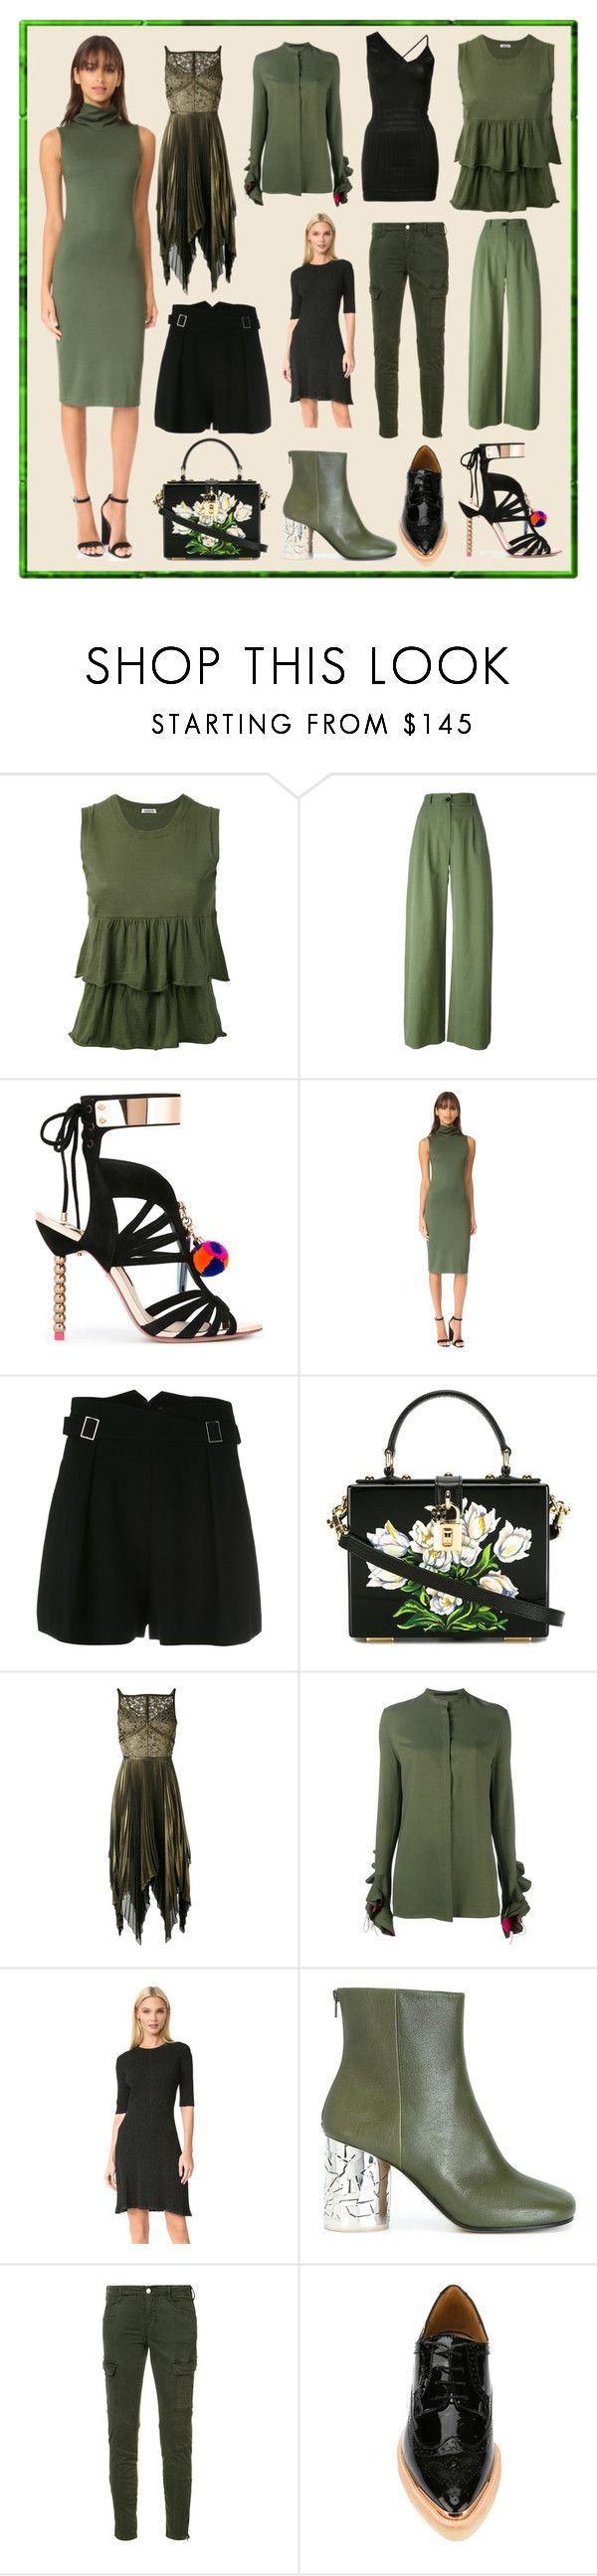 """""""Weekend Sale"""" by cate-jennifer ❤ liked on Polyvore featuring P.A.R.O.S.H., Sophia Webster, L'Agence, Zimmermann, Dolce&Gabbana, Elie Saab, Haider Ackermann, McQ by Alexander McQueen, Maison Margiela and J Brand"""